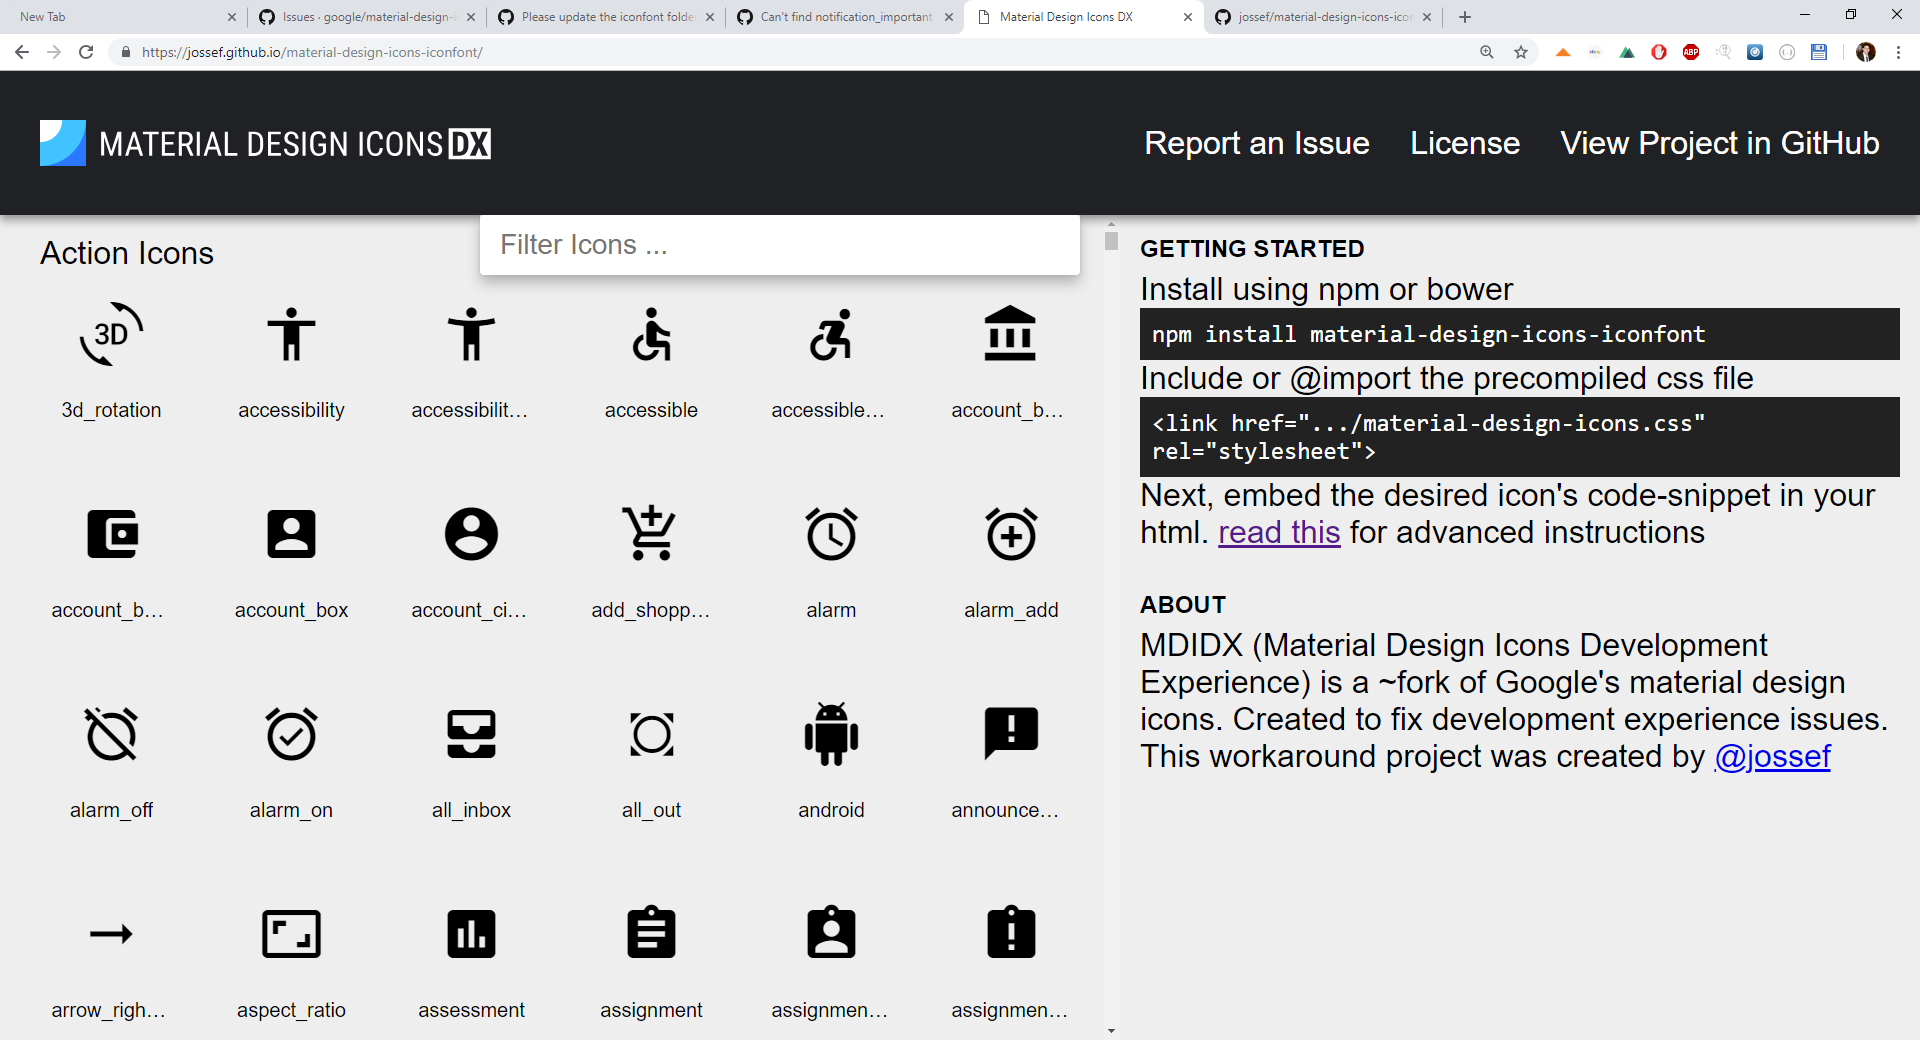 MD icons not working in IE11 · Issue #752 · google/material-design